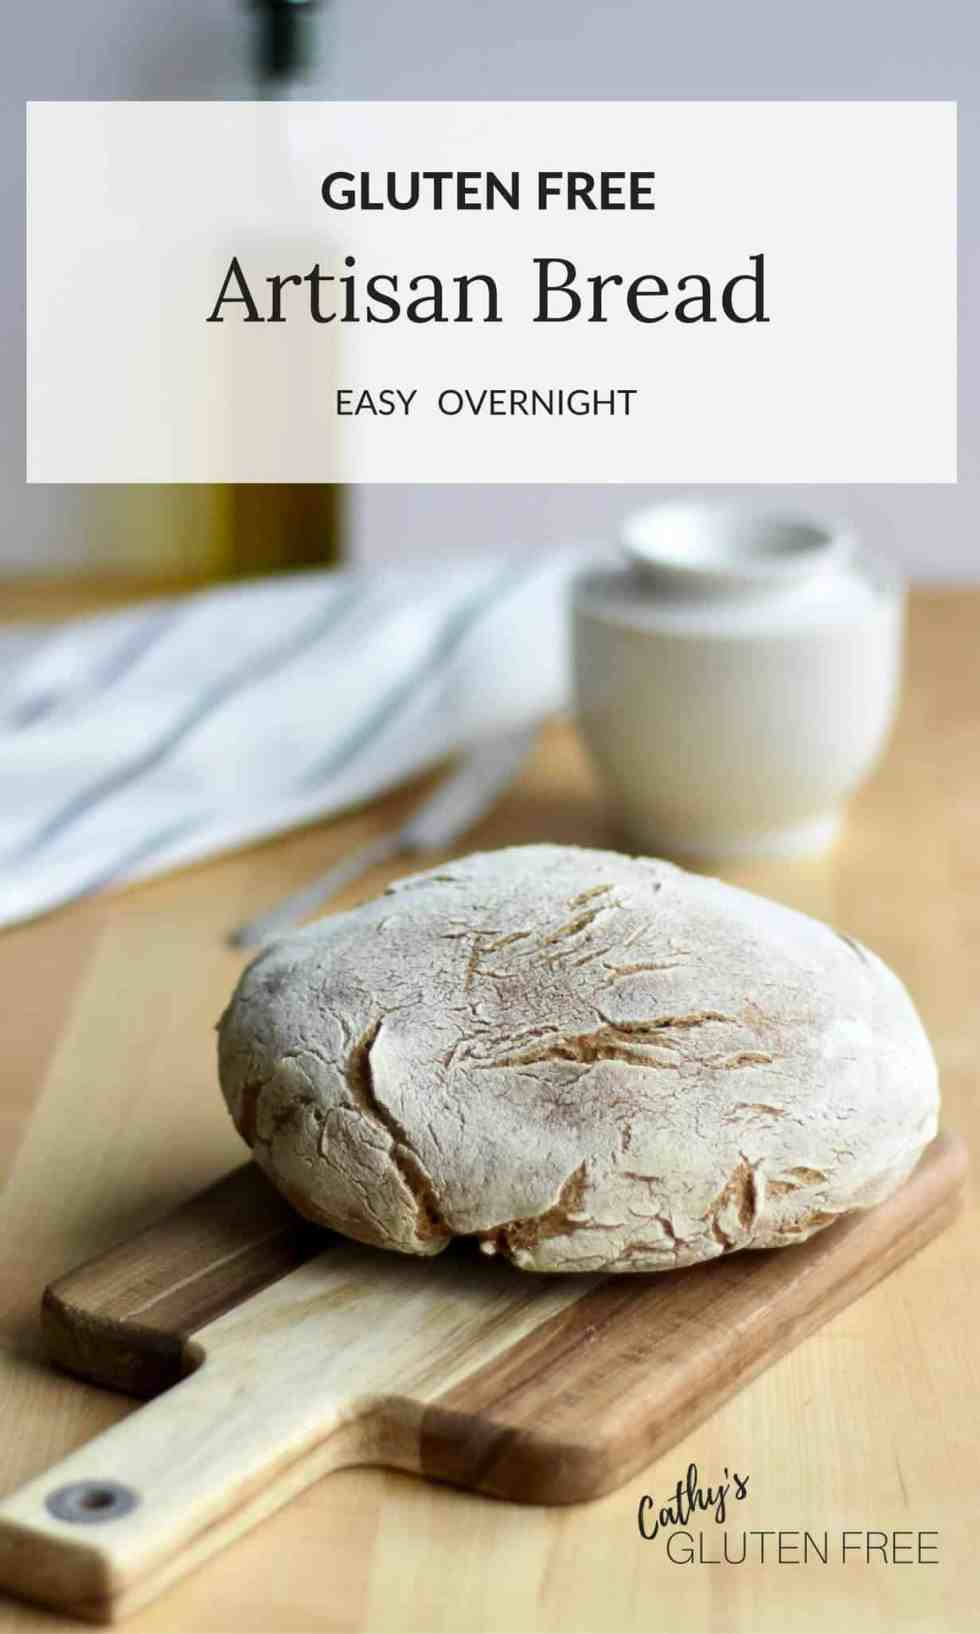 Artisan Bread for Restricted Diets | Gluten Free | Dairy Free | Nut Free | Soy Free | NIghtshade Free |CathysGlutenFree.com